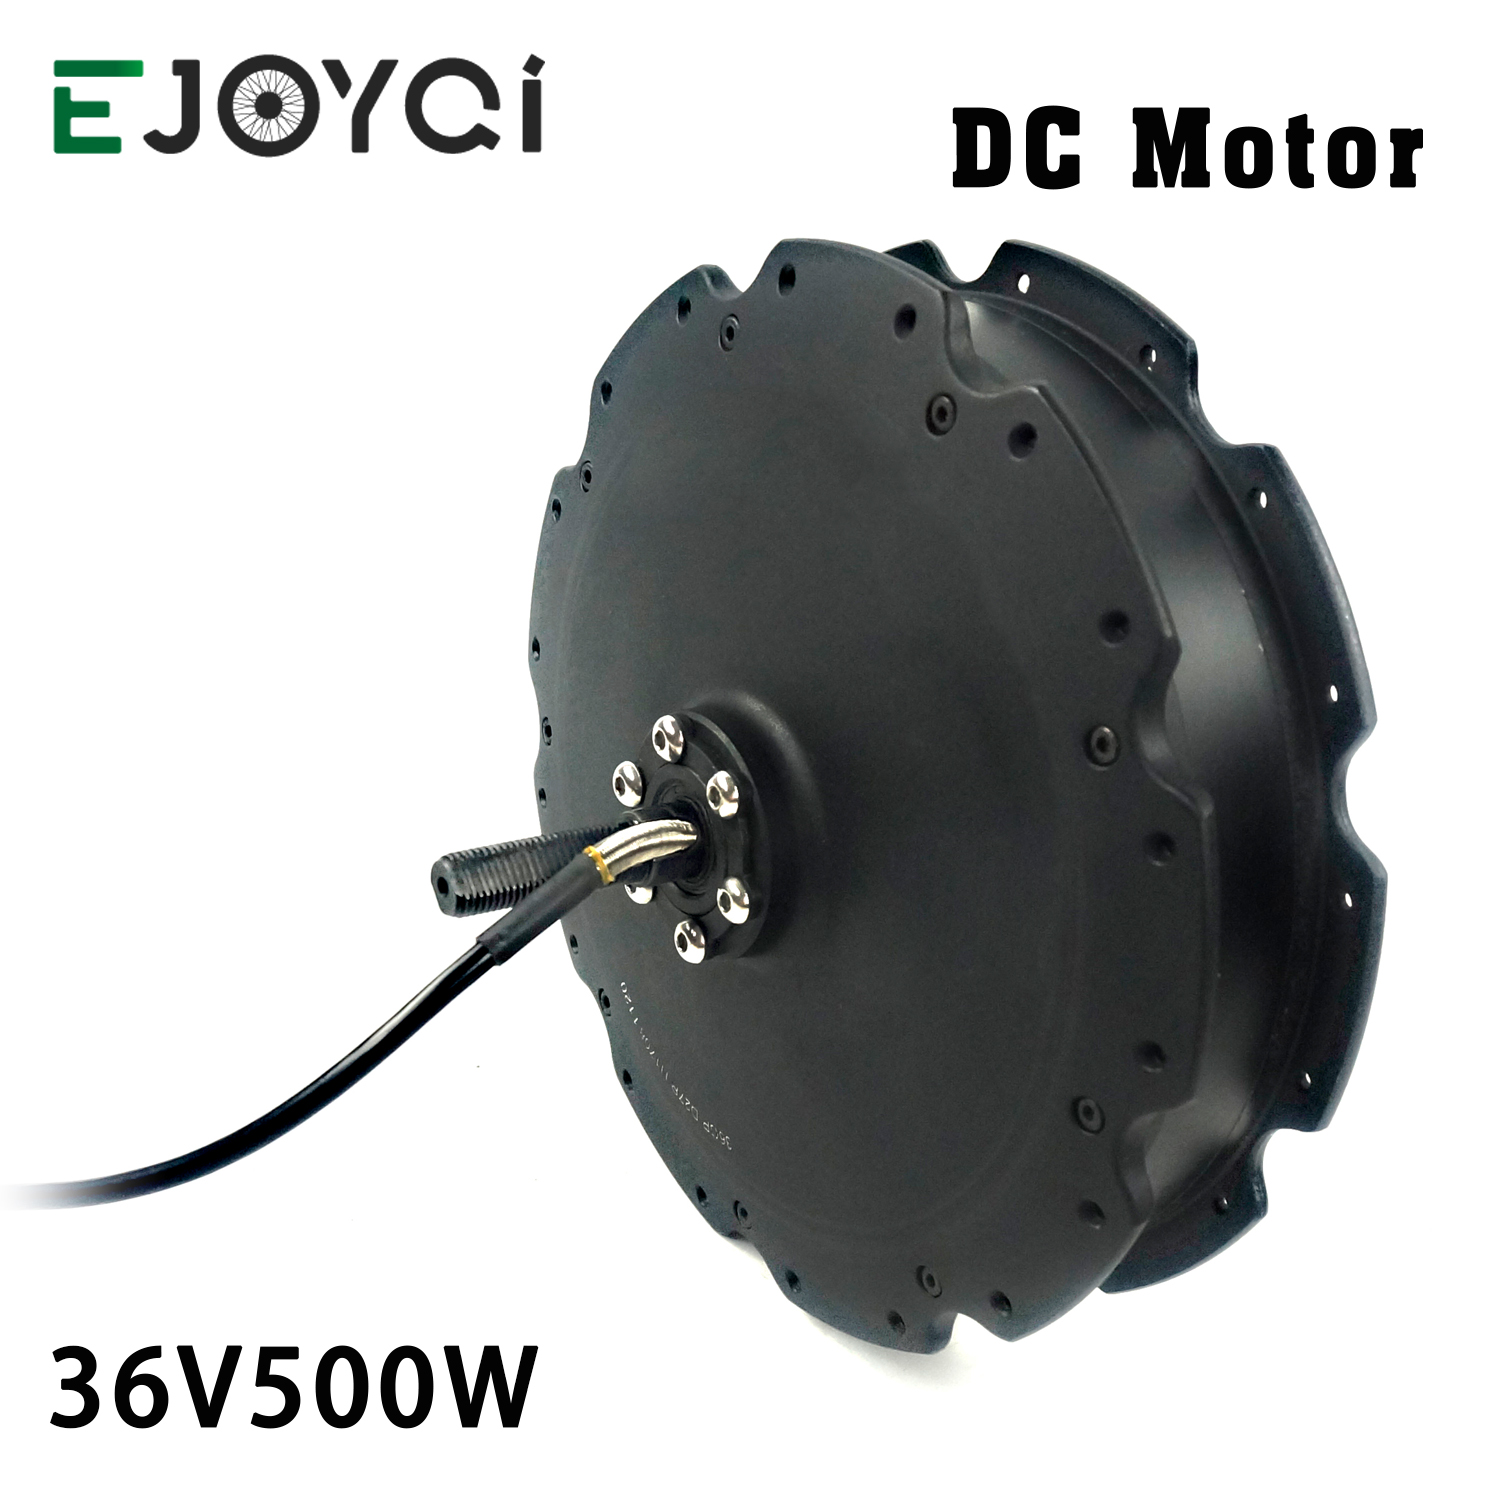 EJOYQI DC Hub Motor 36V 48V 500W Rear Rotate Motor High Speed Brushless Non Gear DC Motor for Electric Bicycle Conversion Kit